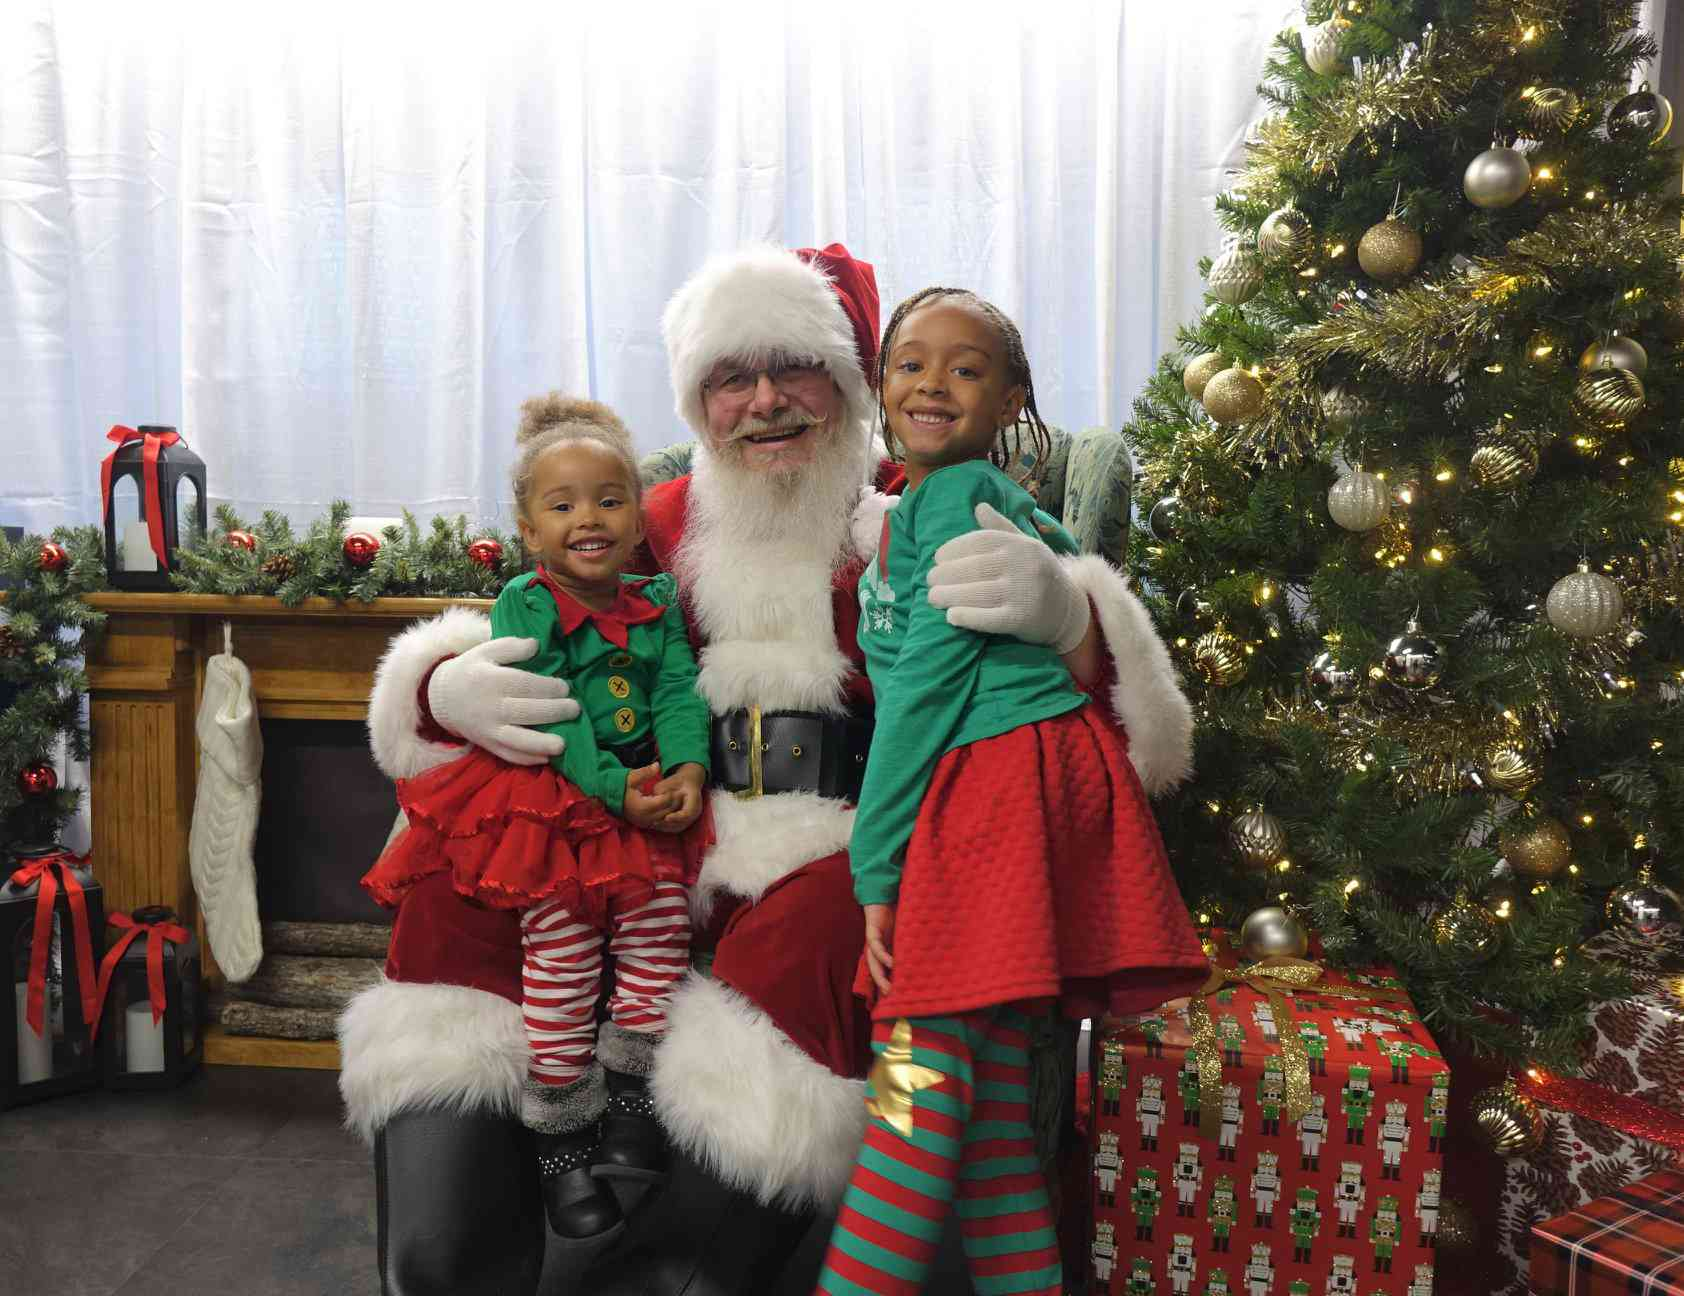 Things to Do for the Holidays in St Louis With Your Family